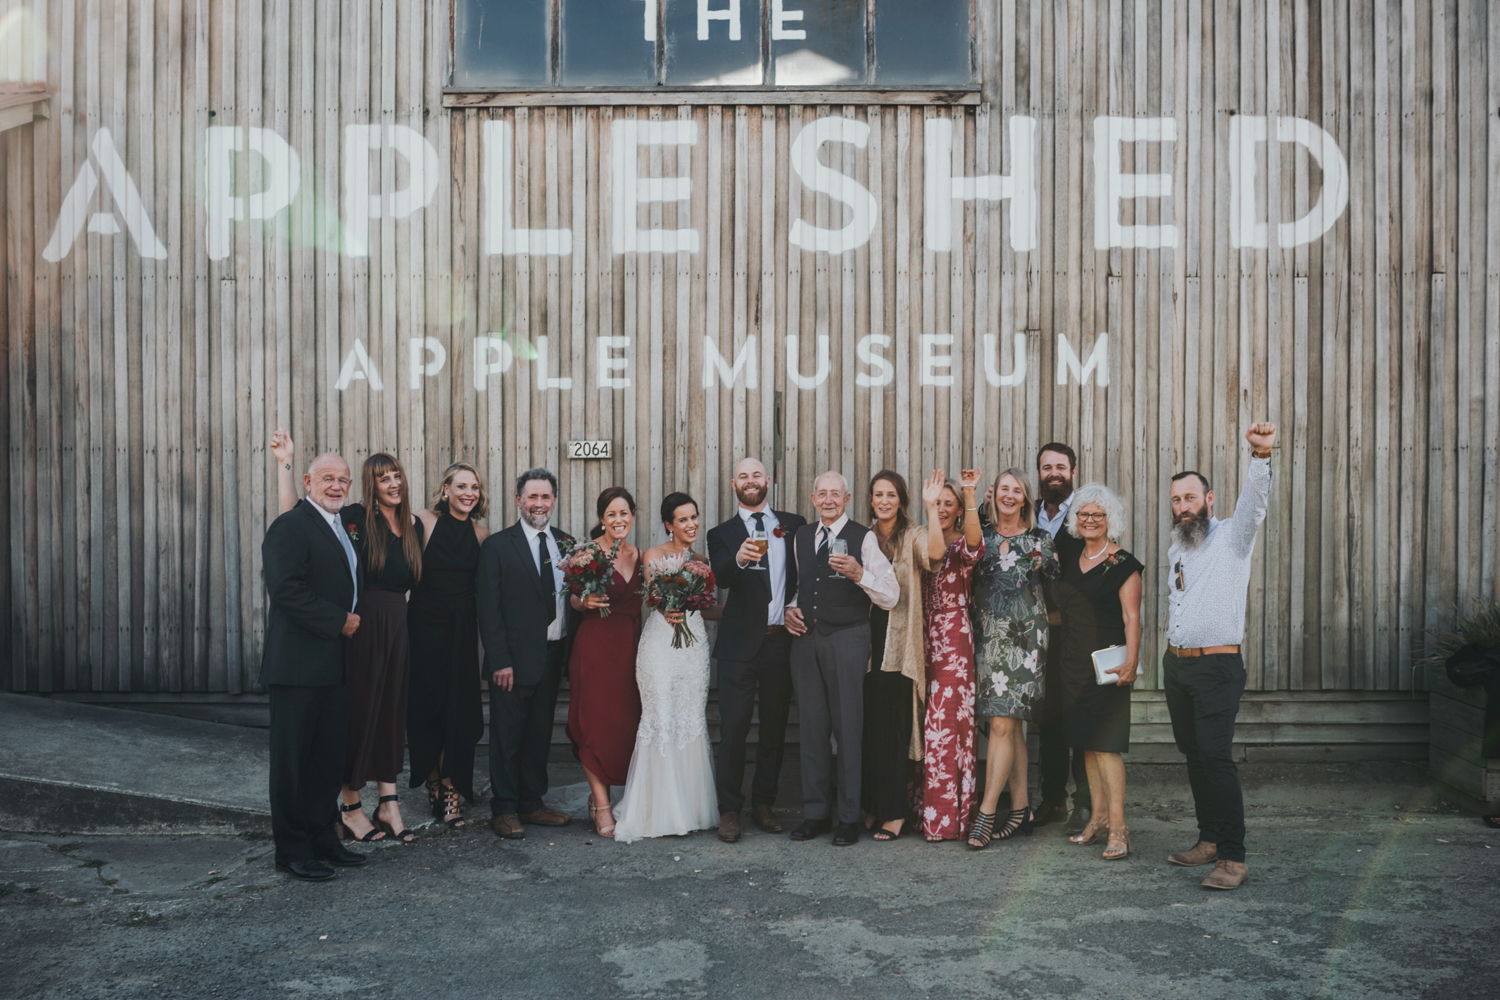 Beautiful wedding portrait of a family at the apple shed Hobart.